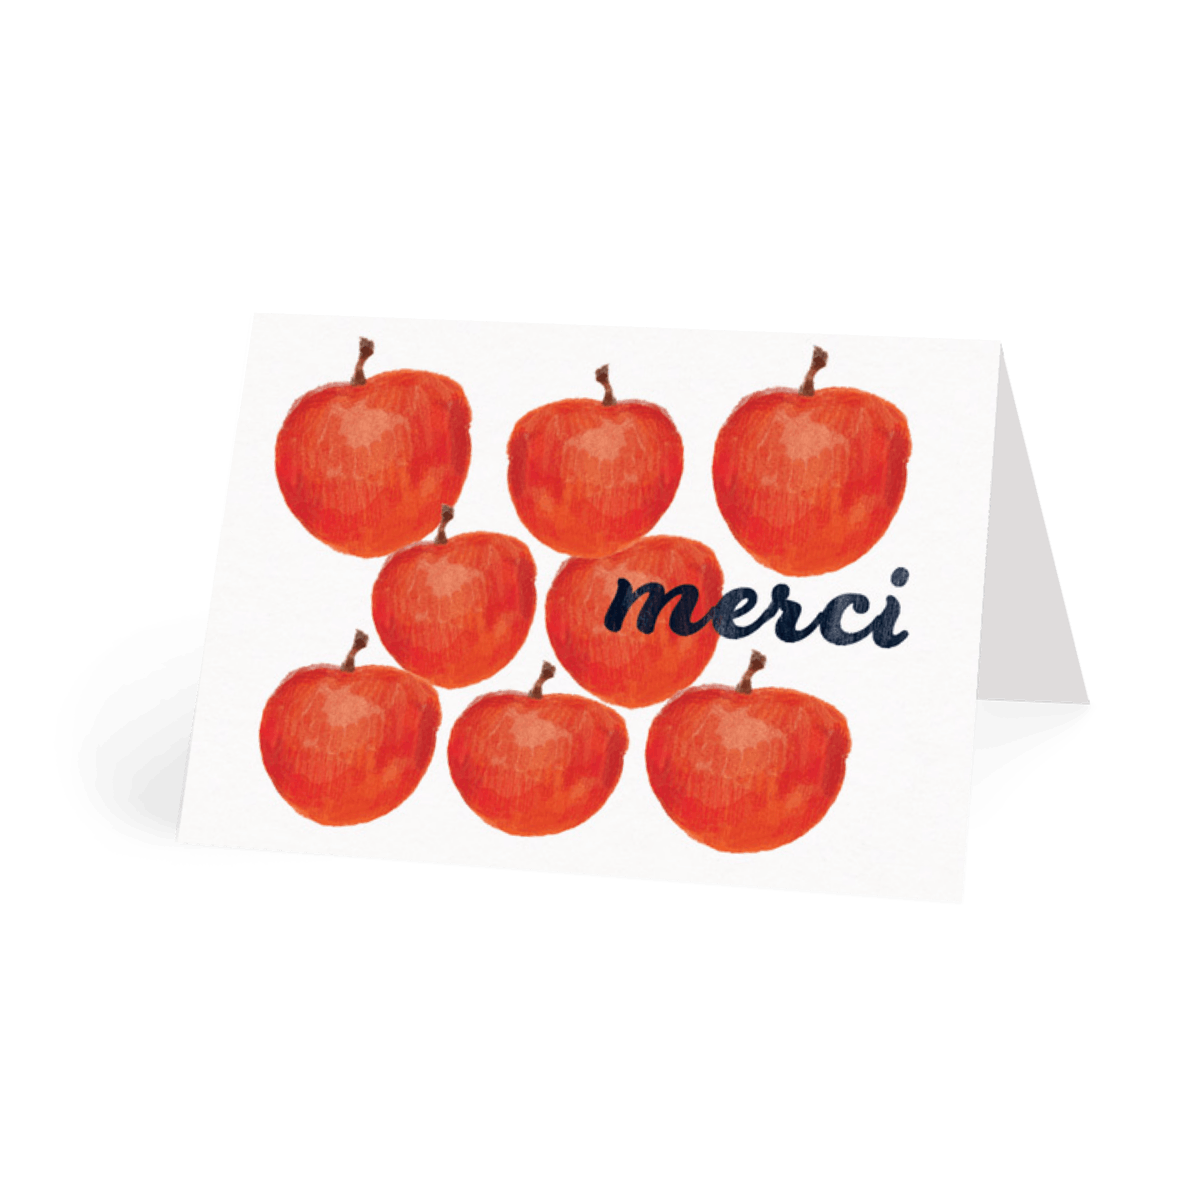 Https%3a%2f%2fwww.papier.com%2fproduct image%2f29313%2f14%2fred apples merci 7363 front 1507913963.png?ixlib=rb 1.1